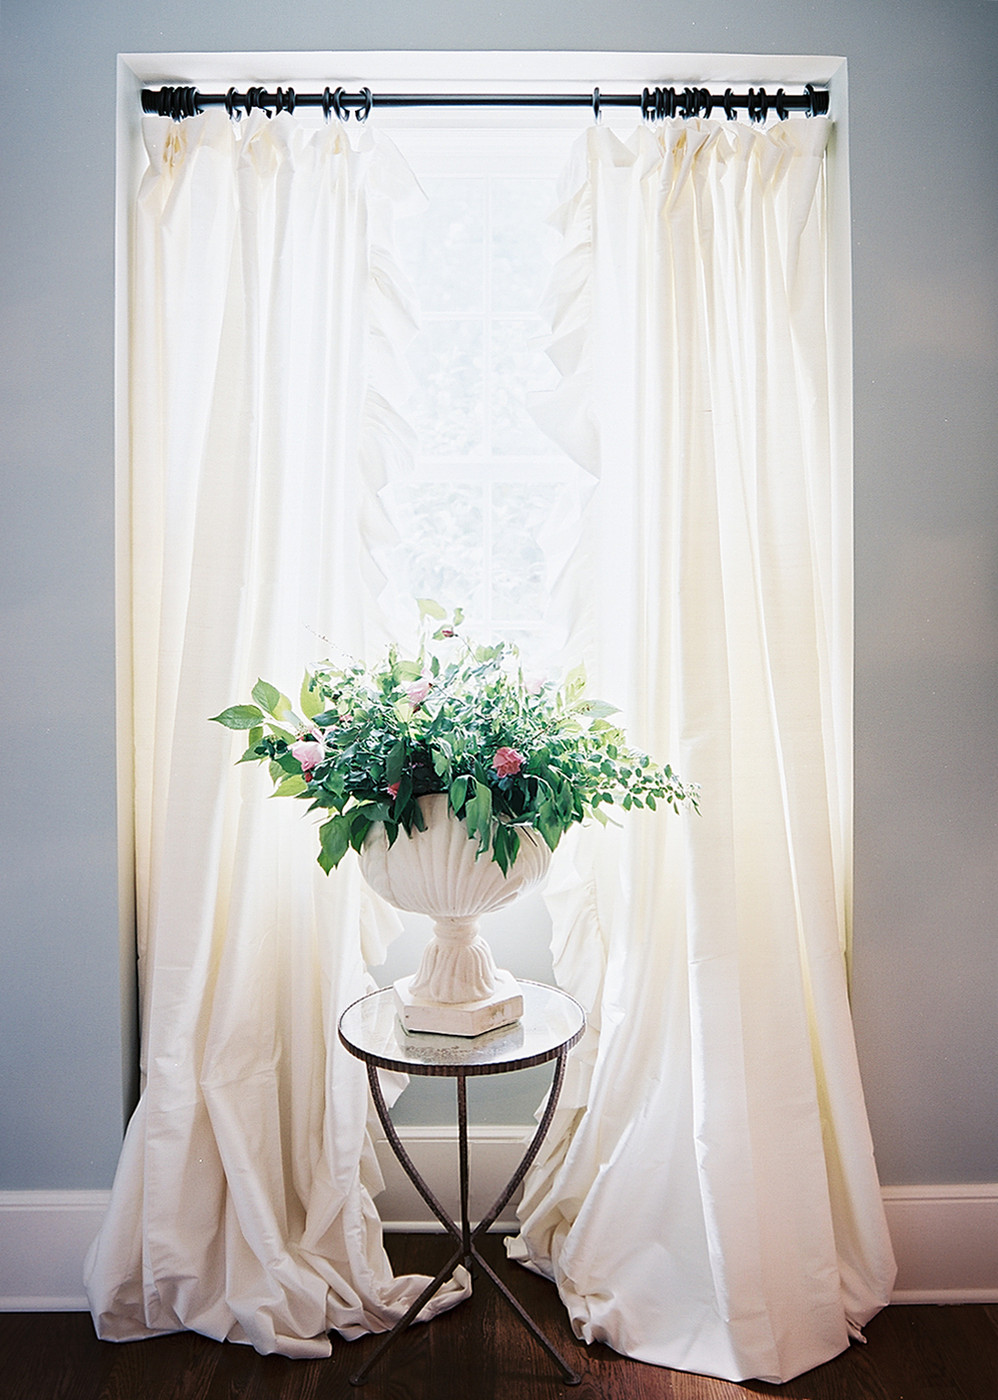 White Flowing Curtains Windows Photos 408 Of 447